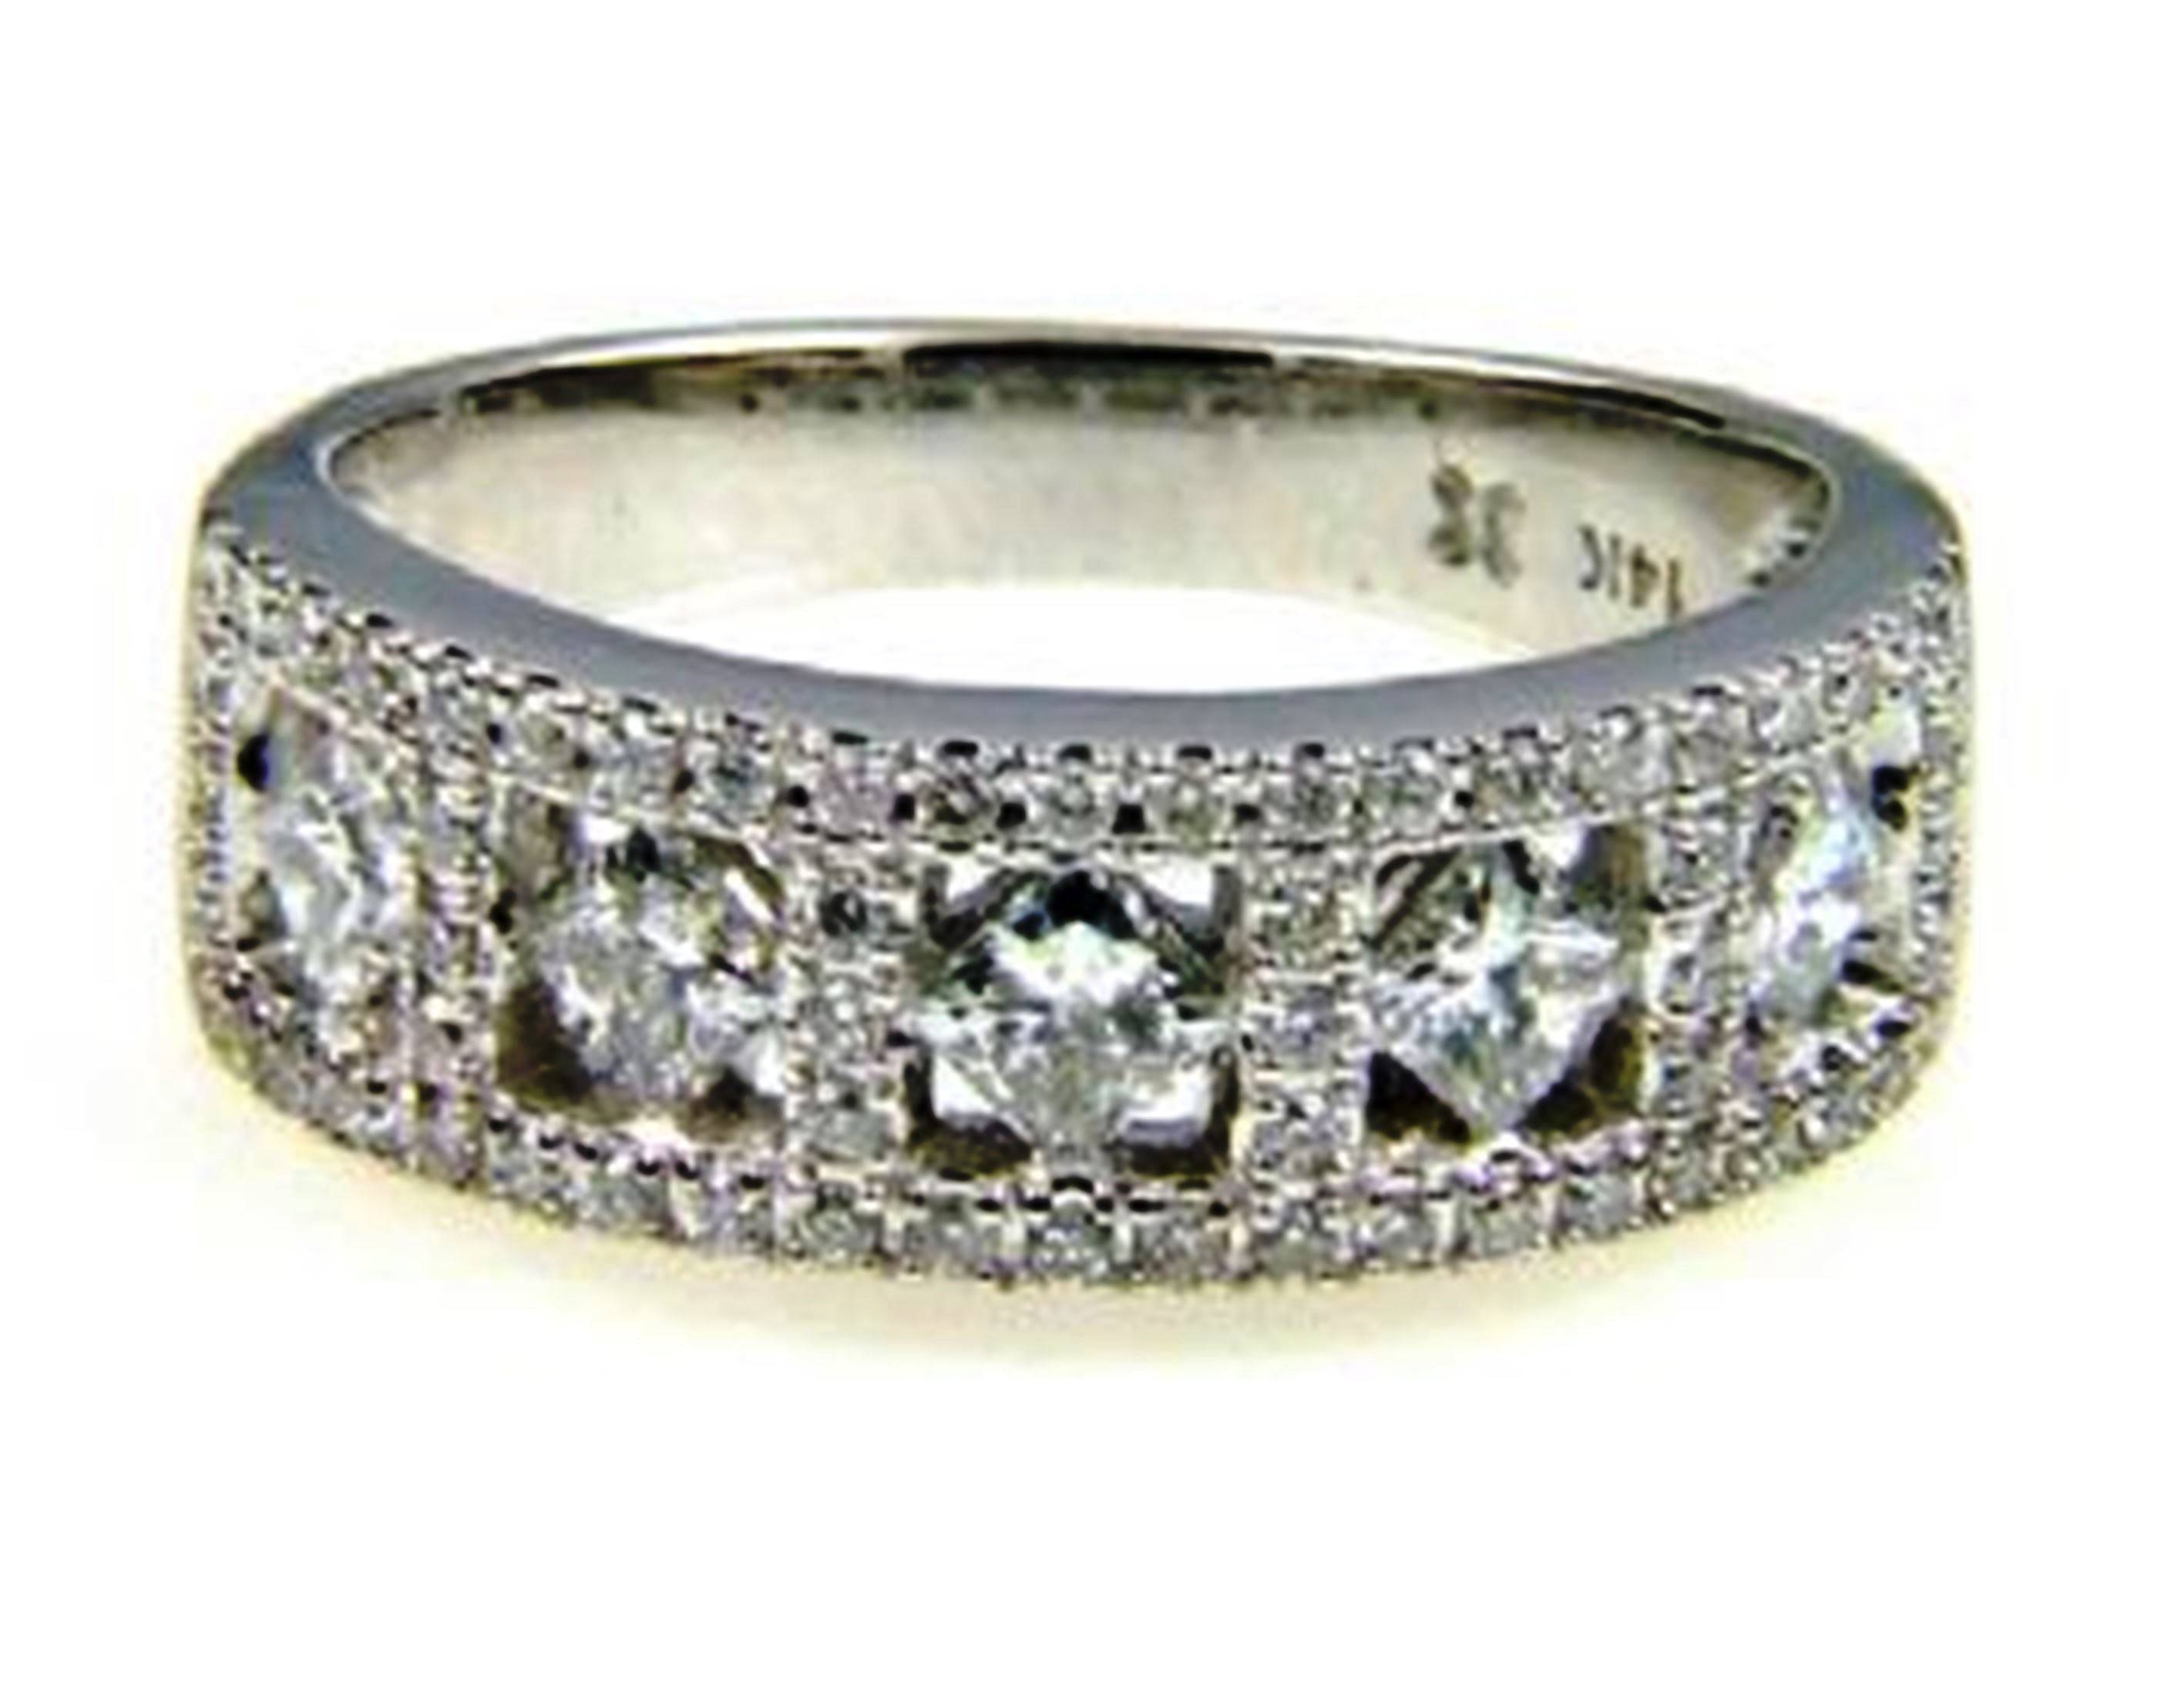 faux sparkles paved eternity rings contemporary bands wide ca floral beloved cubic band zirconia collections elegant diamond ring silver latesha